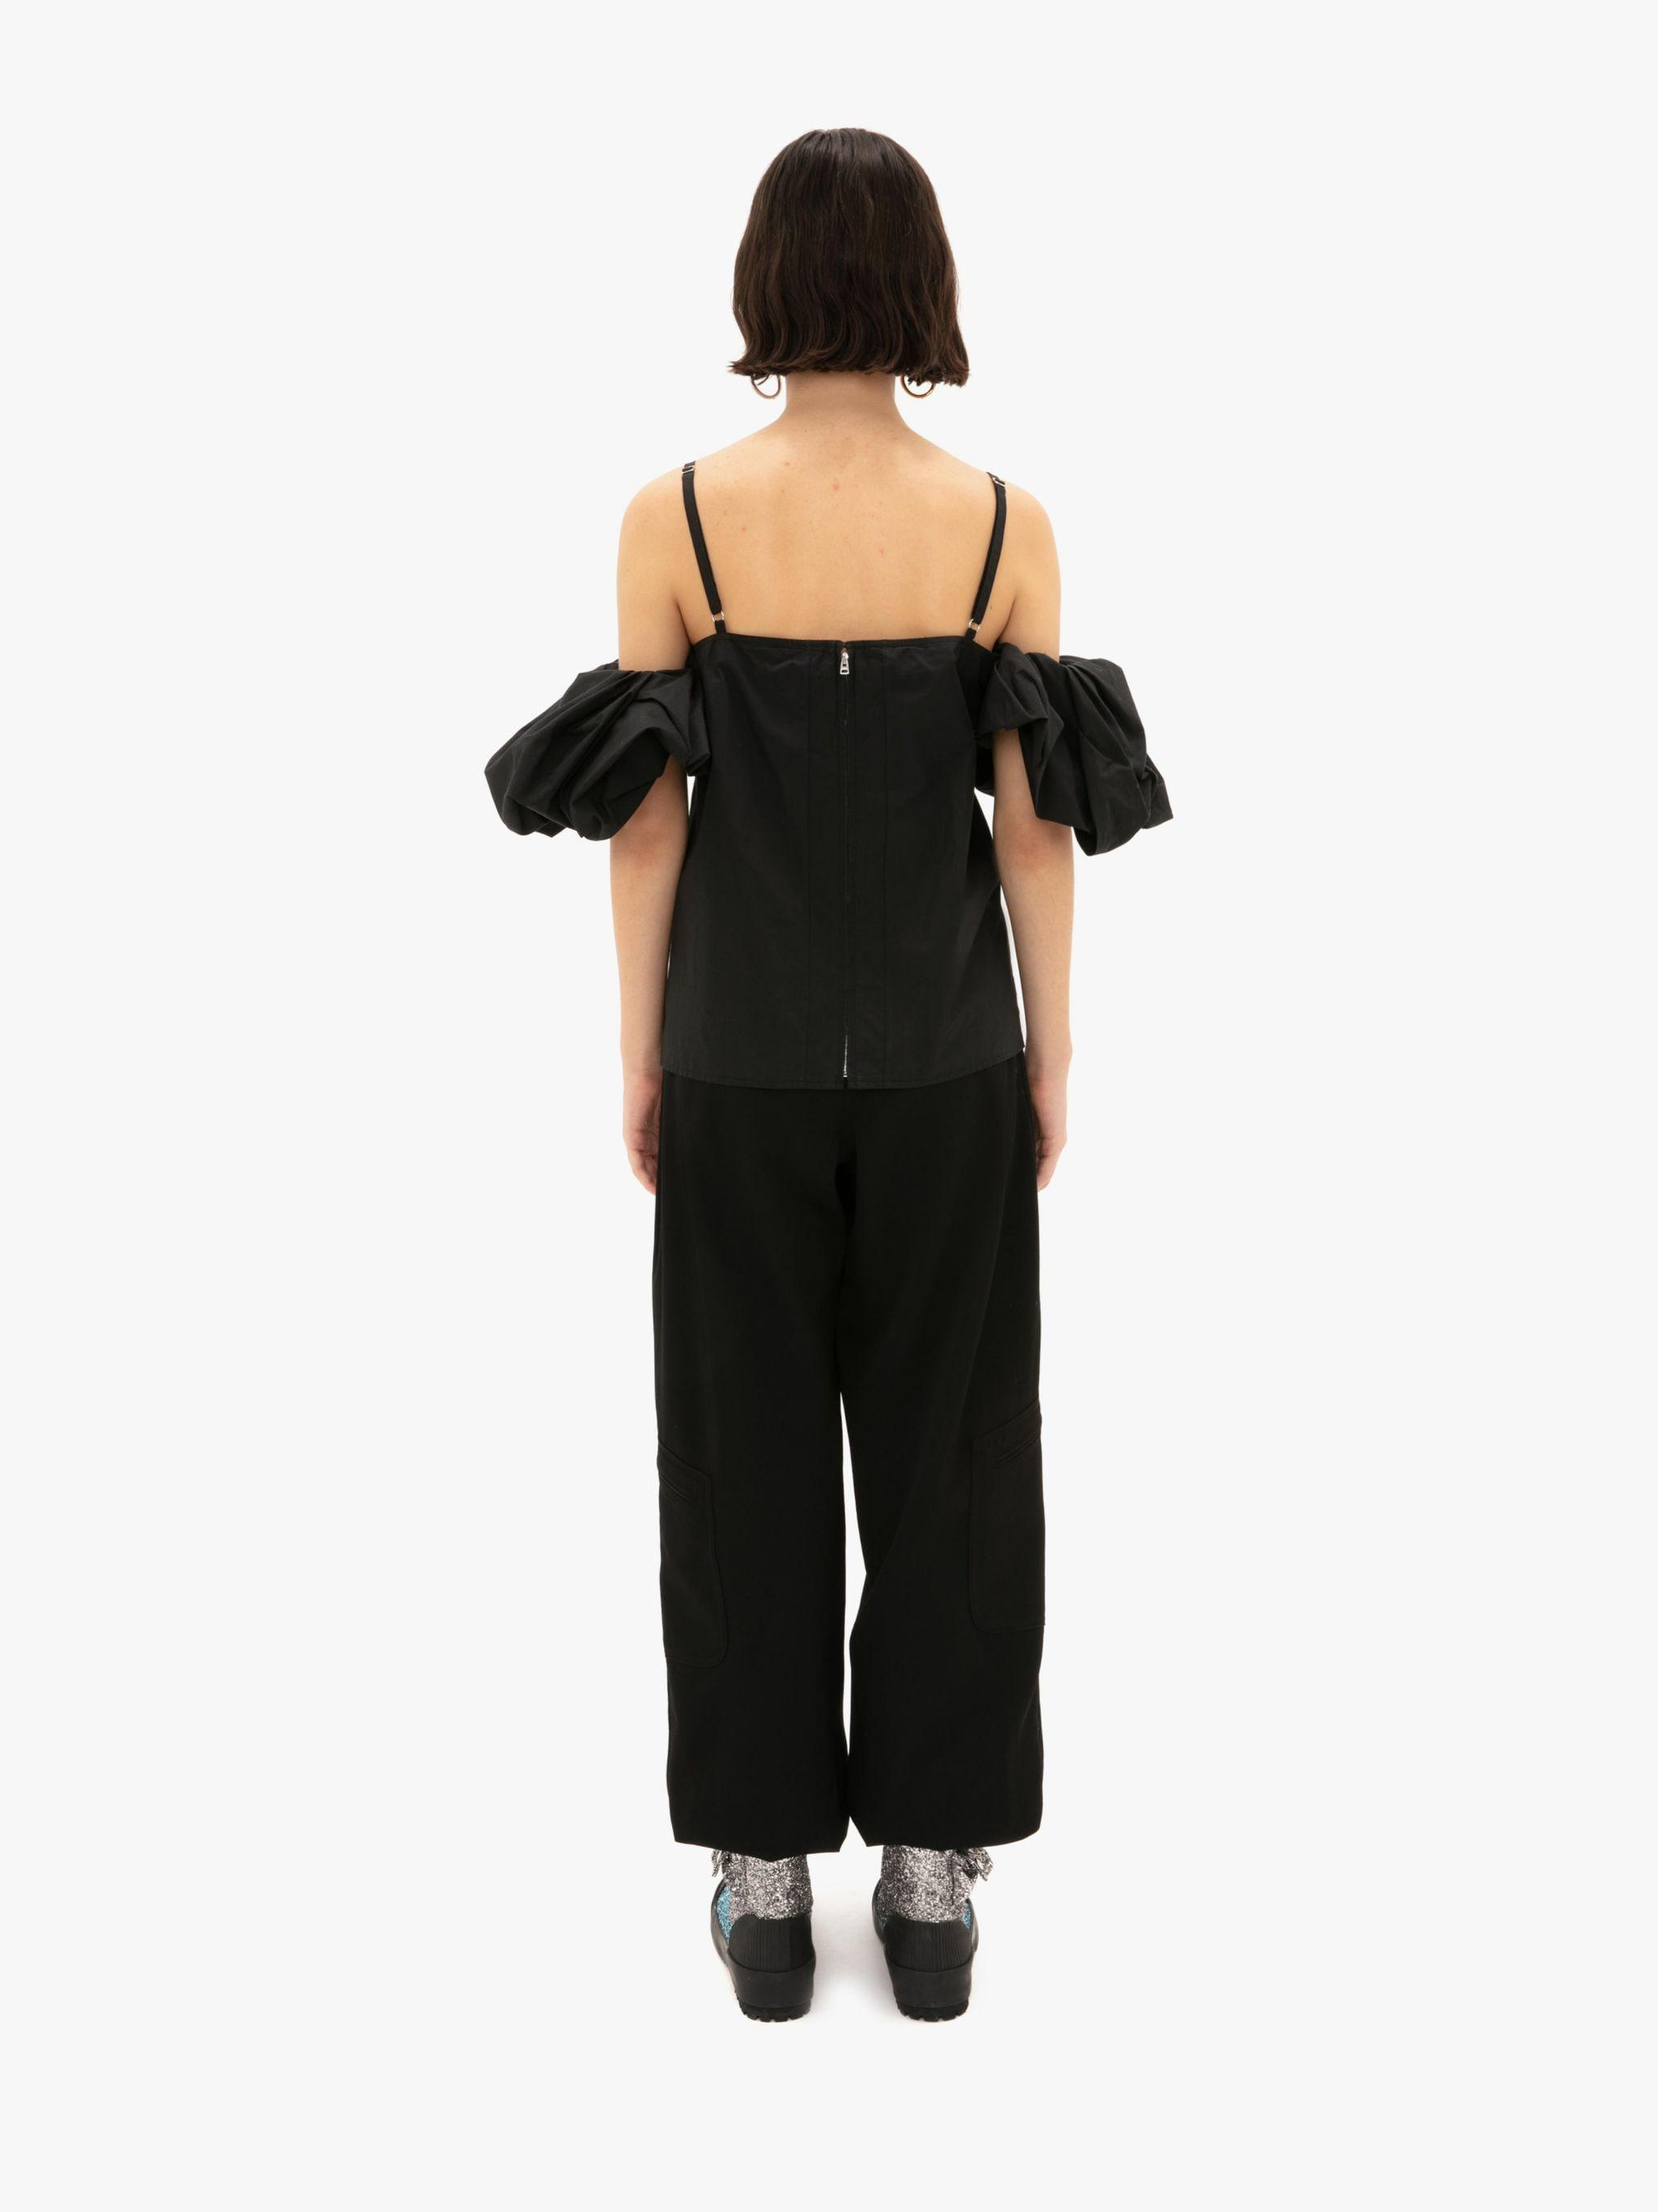 OFF THE SHOULDER CAMISOLE TOP 2